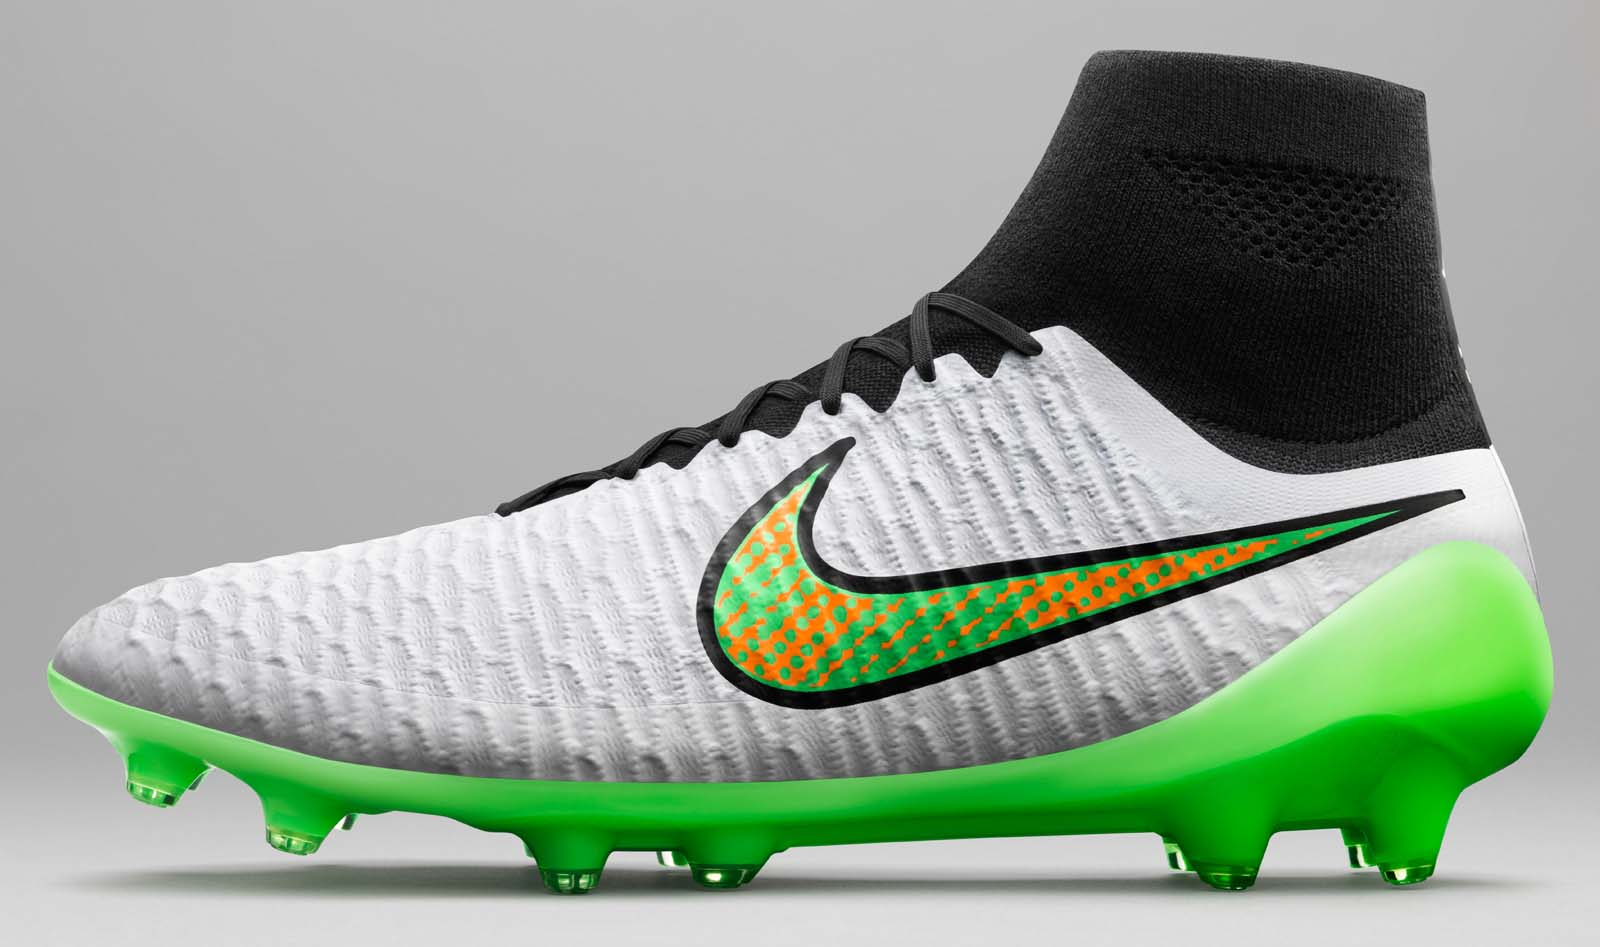 new 2015 soccer cleats nike magista